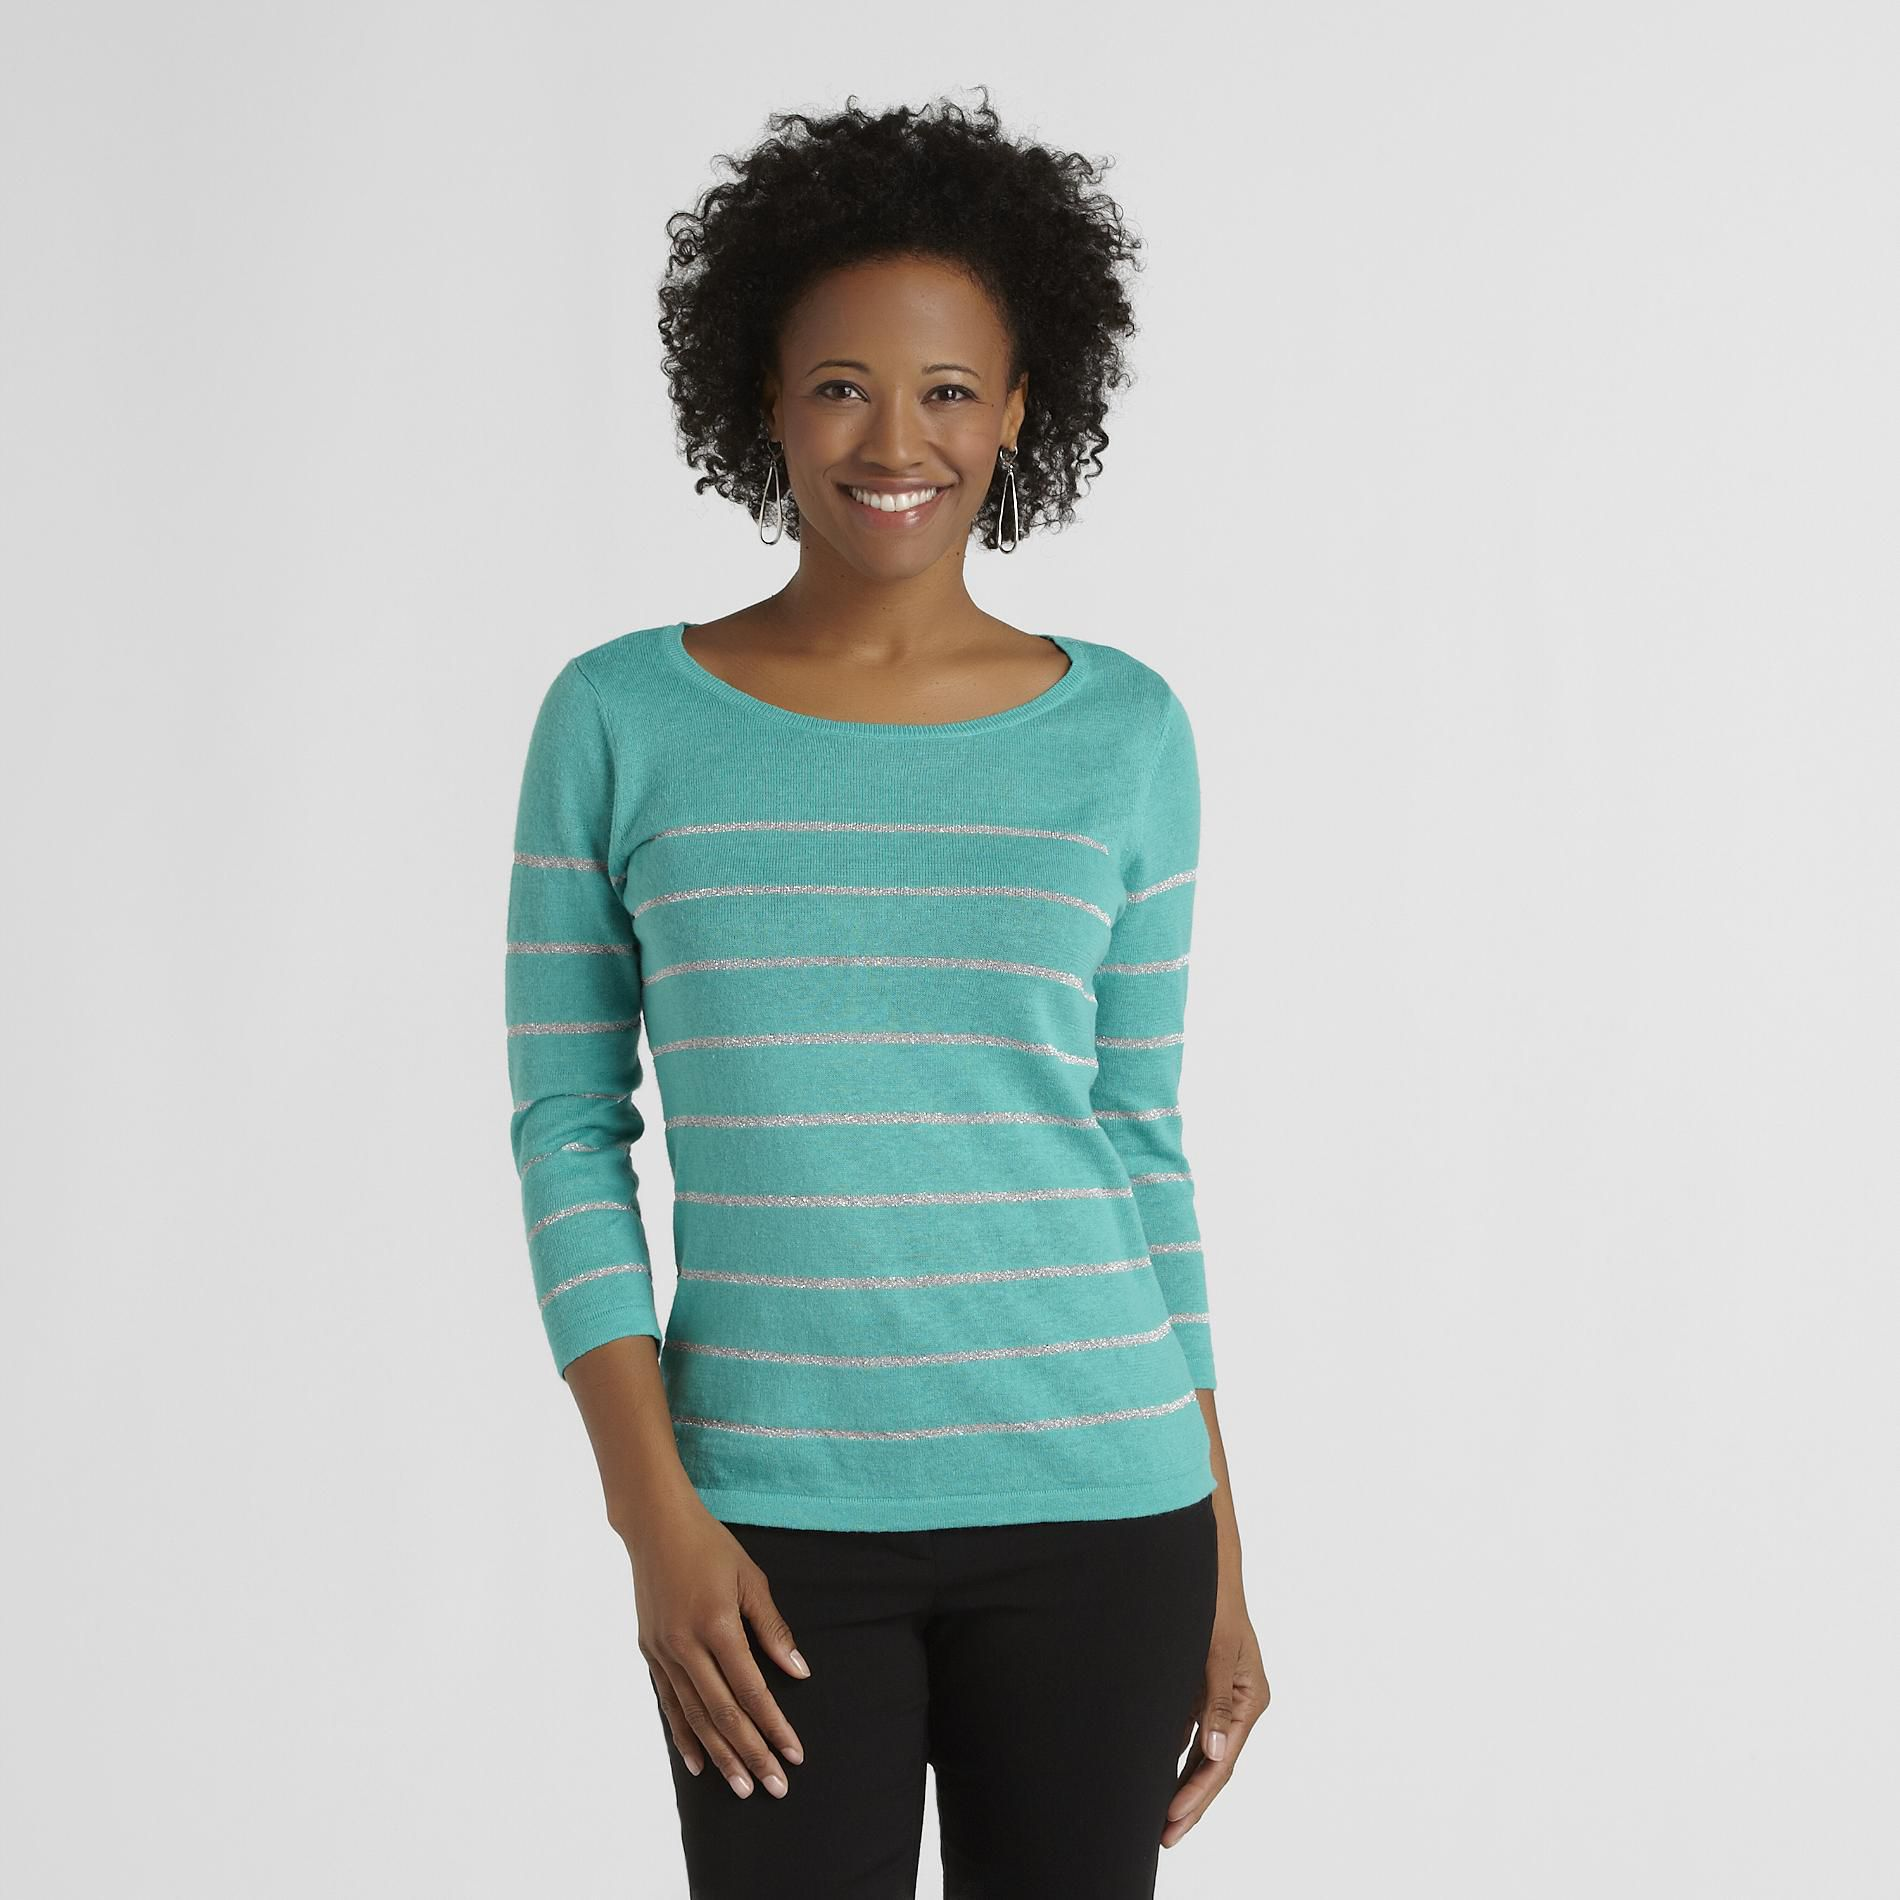 Jaclyn Smith Women's Sweater - Metallic Stripe at Kmart.com